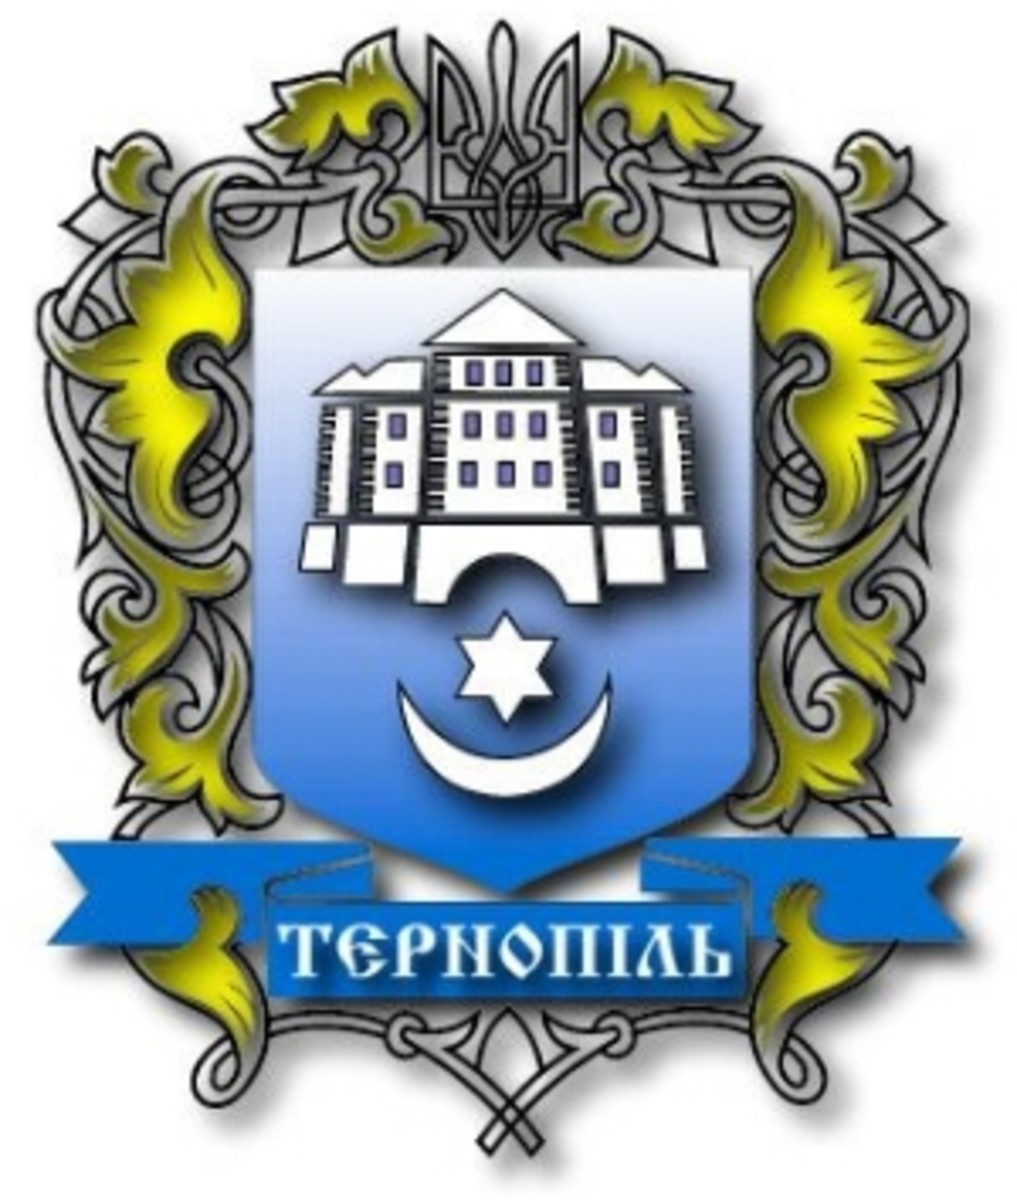 Urological sub-department of the department of Surgery, Ternopil State Medical University